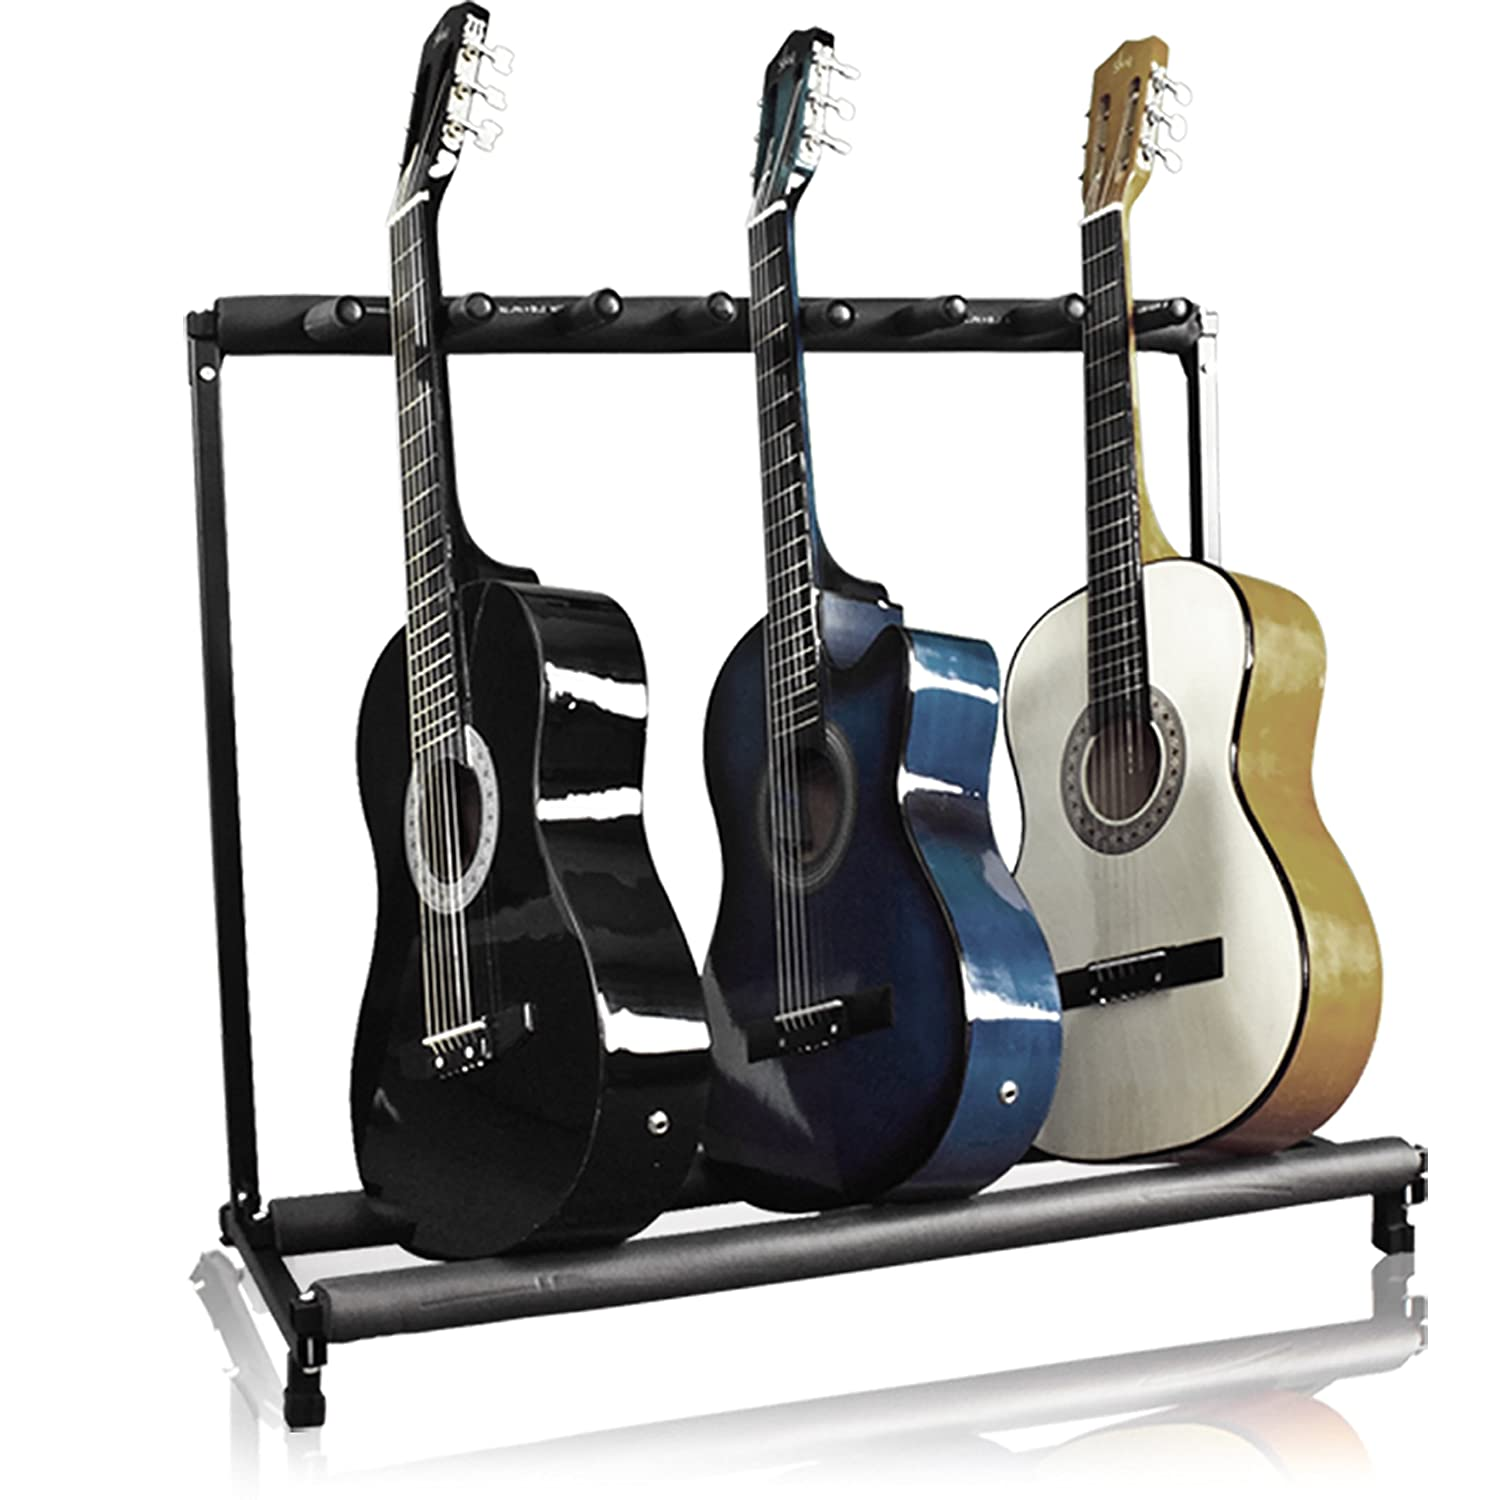 Felji 7 Guitar Stand Folding Rack | Folds Up For Easy Transport | Neoprene Tubing For Protection | Ideal For Music Bands, Recording Studios, Schools, Stage Performers & Artists 806808501653